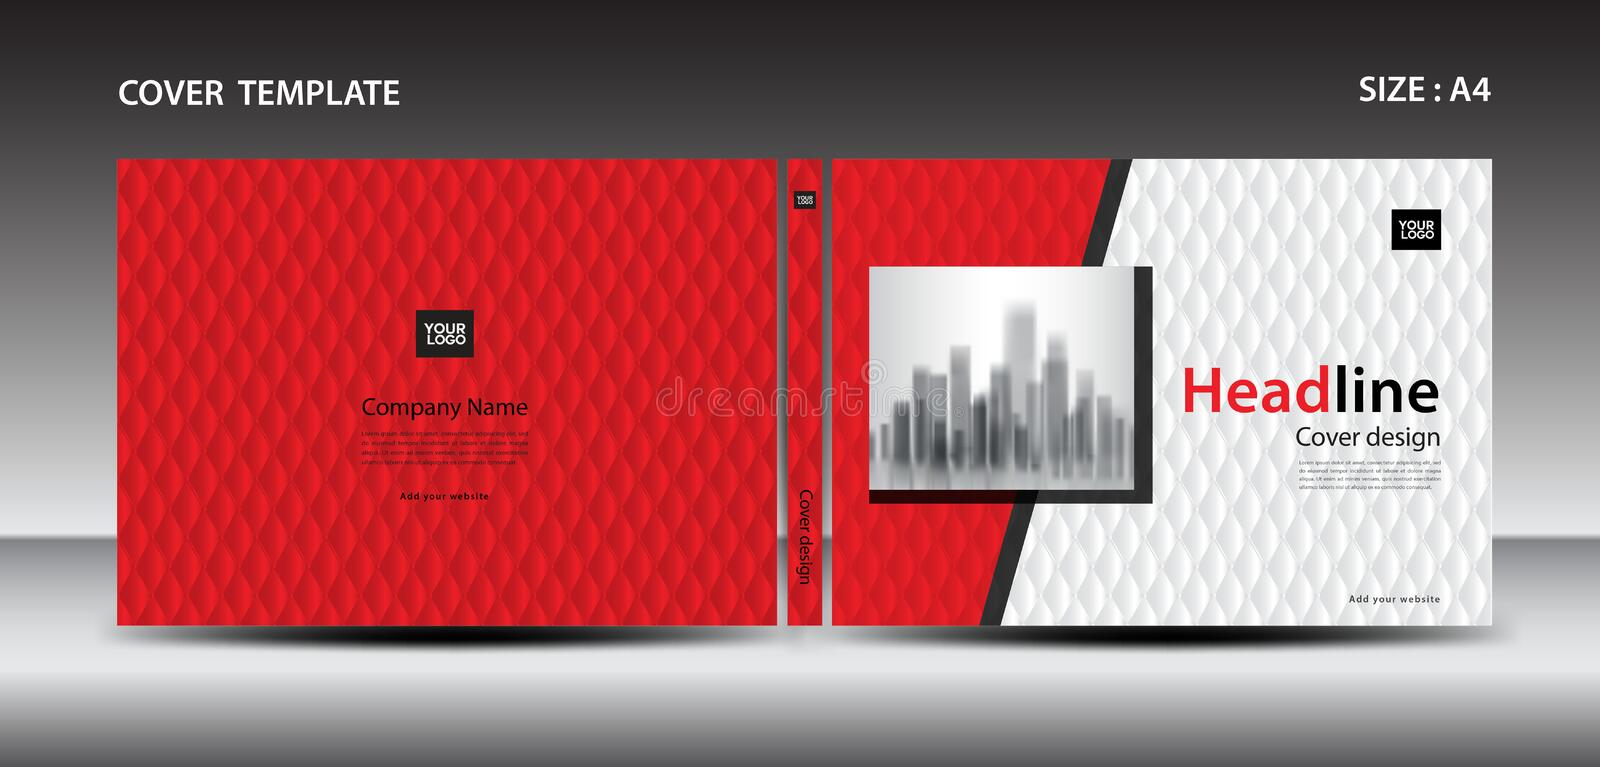 Red Cover design template for magazine, ads, presentation, annual report, book, leaflet, poster vector illustration